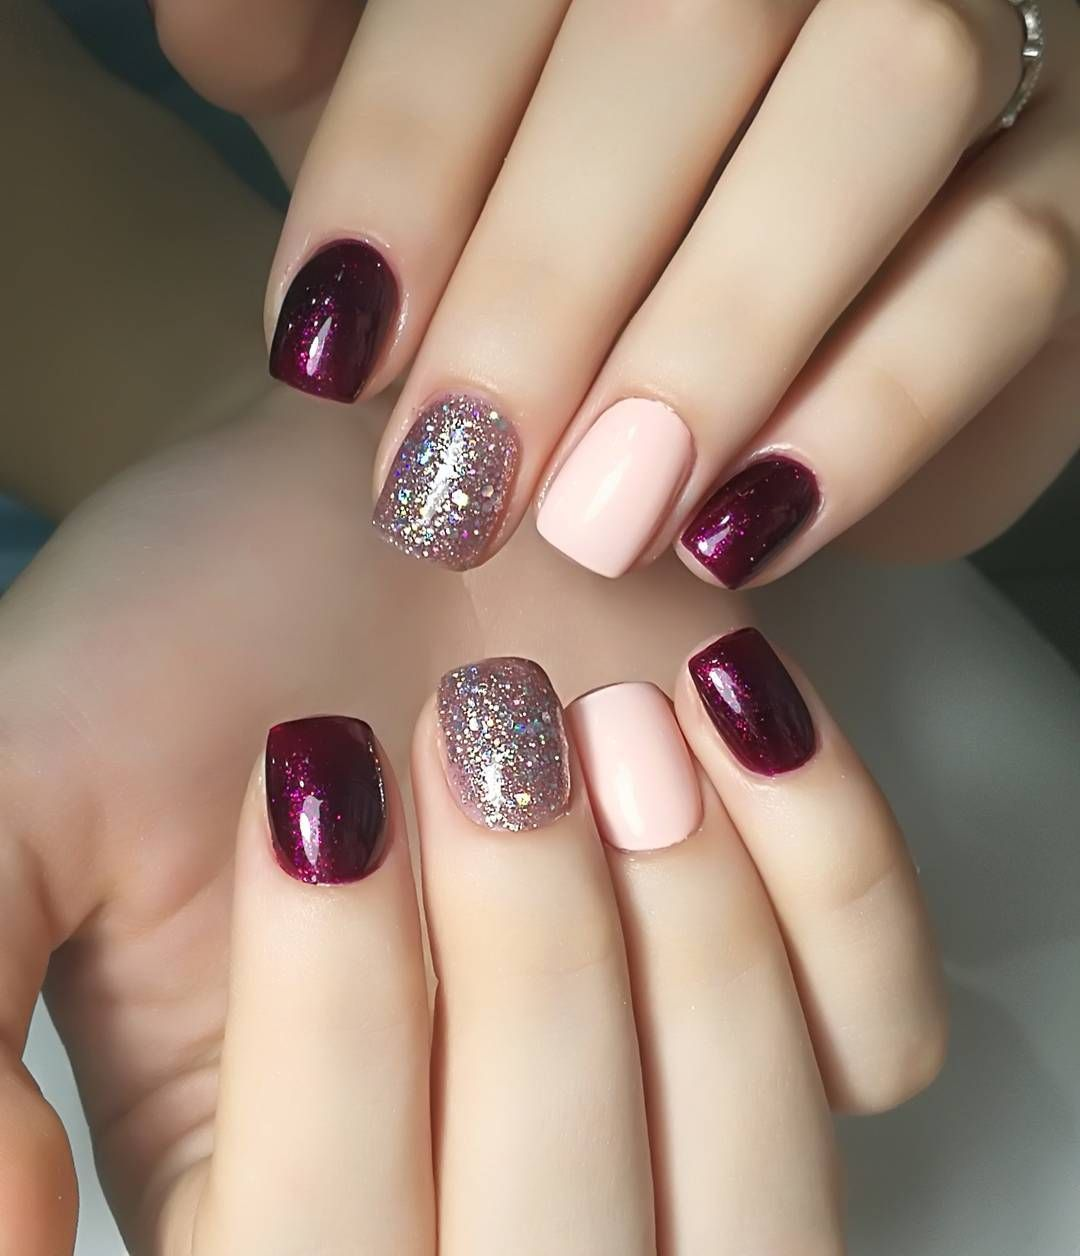 15 Trending Nail Designs That You Will Love!